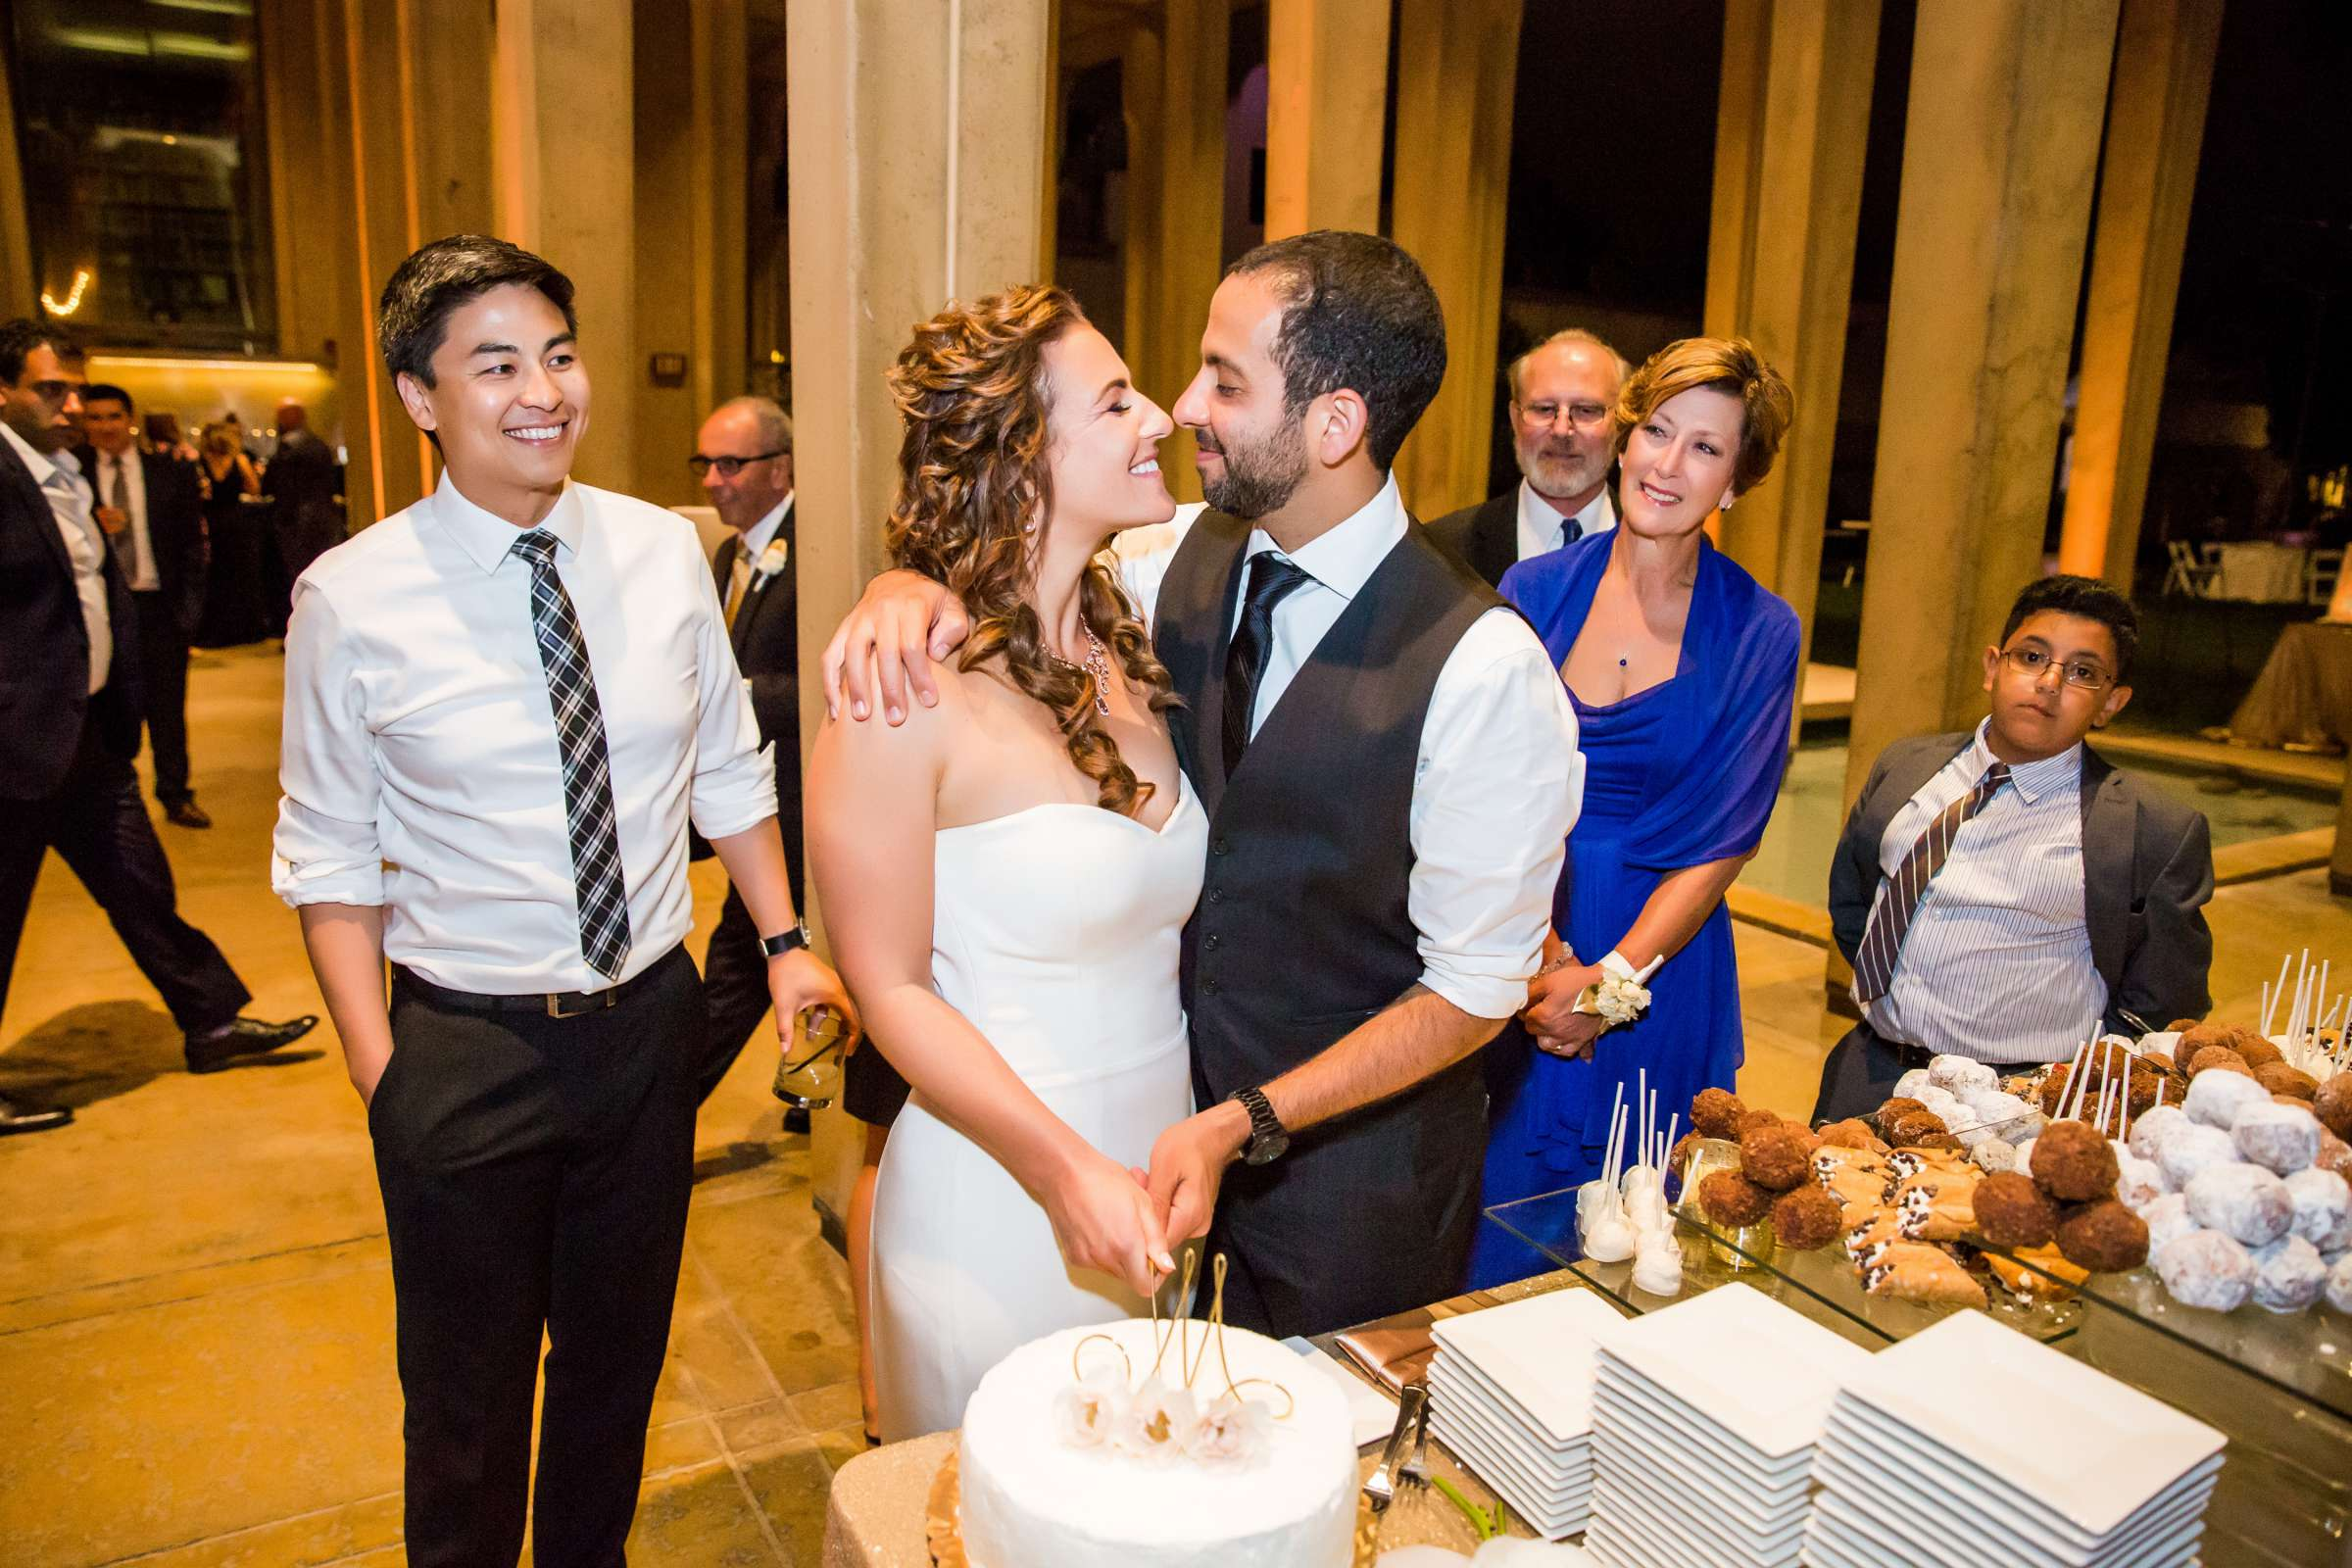 San Diego Museum of Art Wedding coordinated by First Comes Love Weddings & Events, Ruthie and Larry Wedding Photo #236852 by True Photography